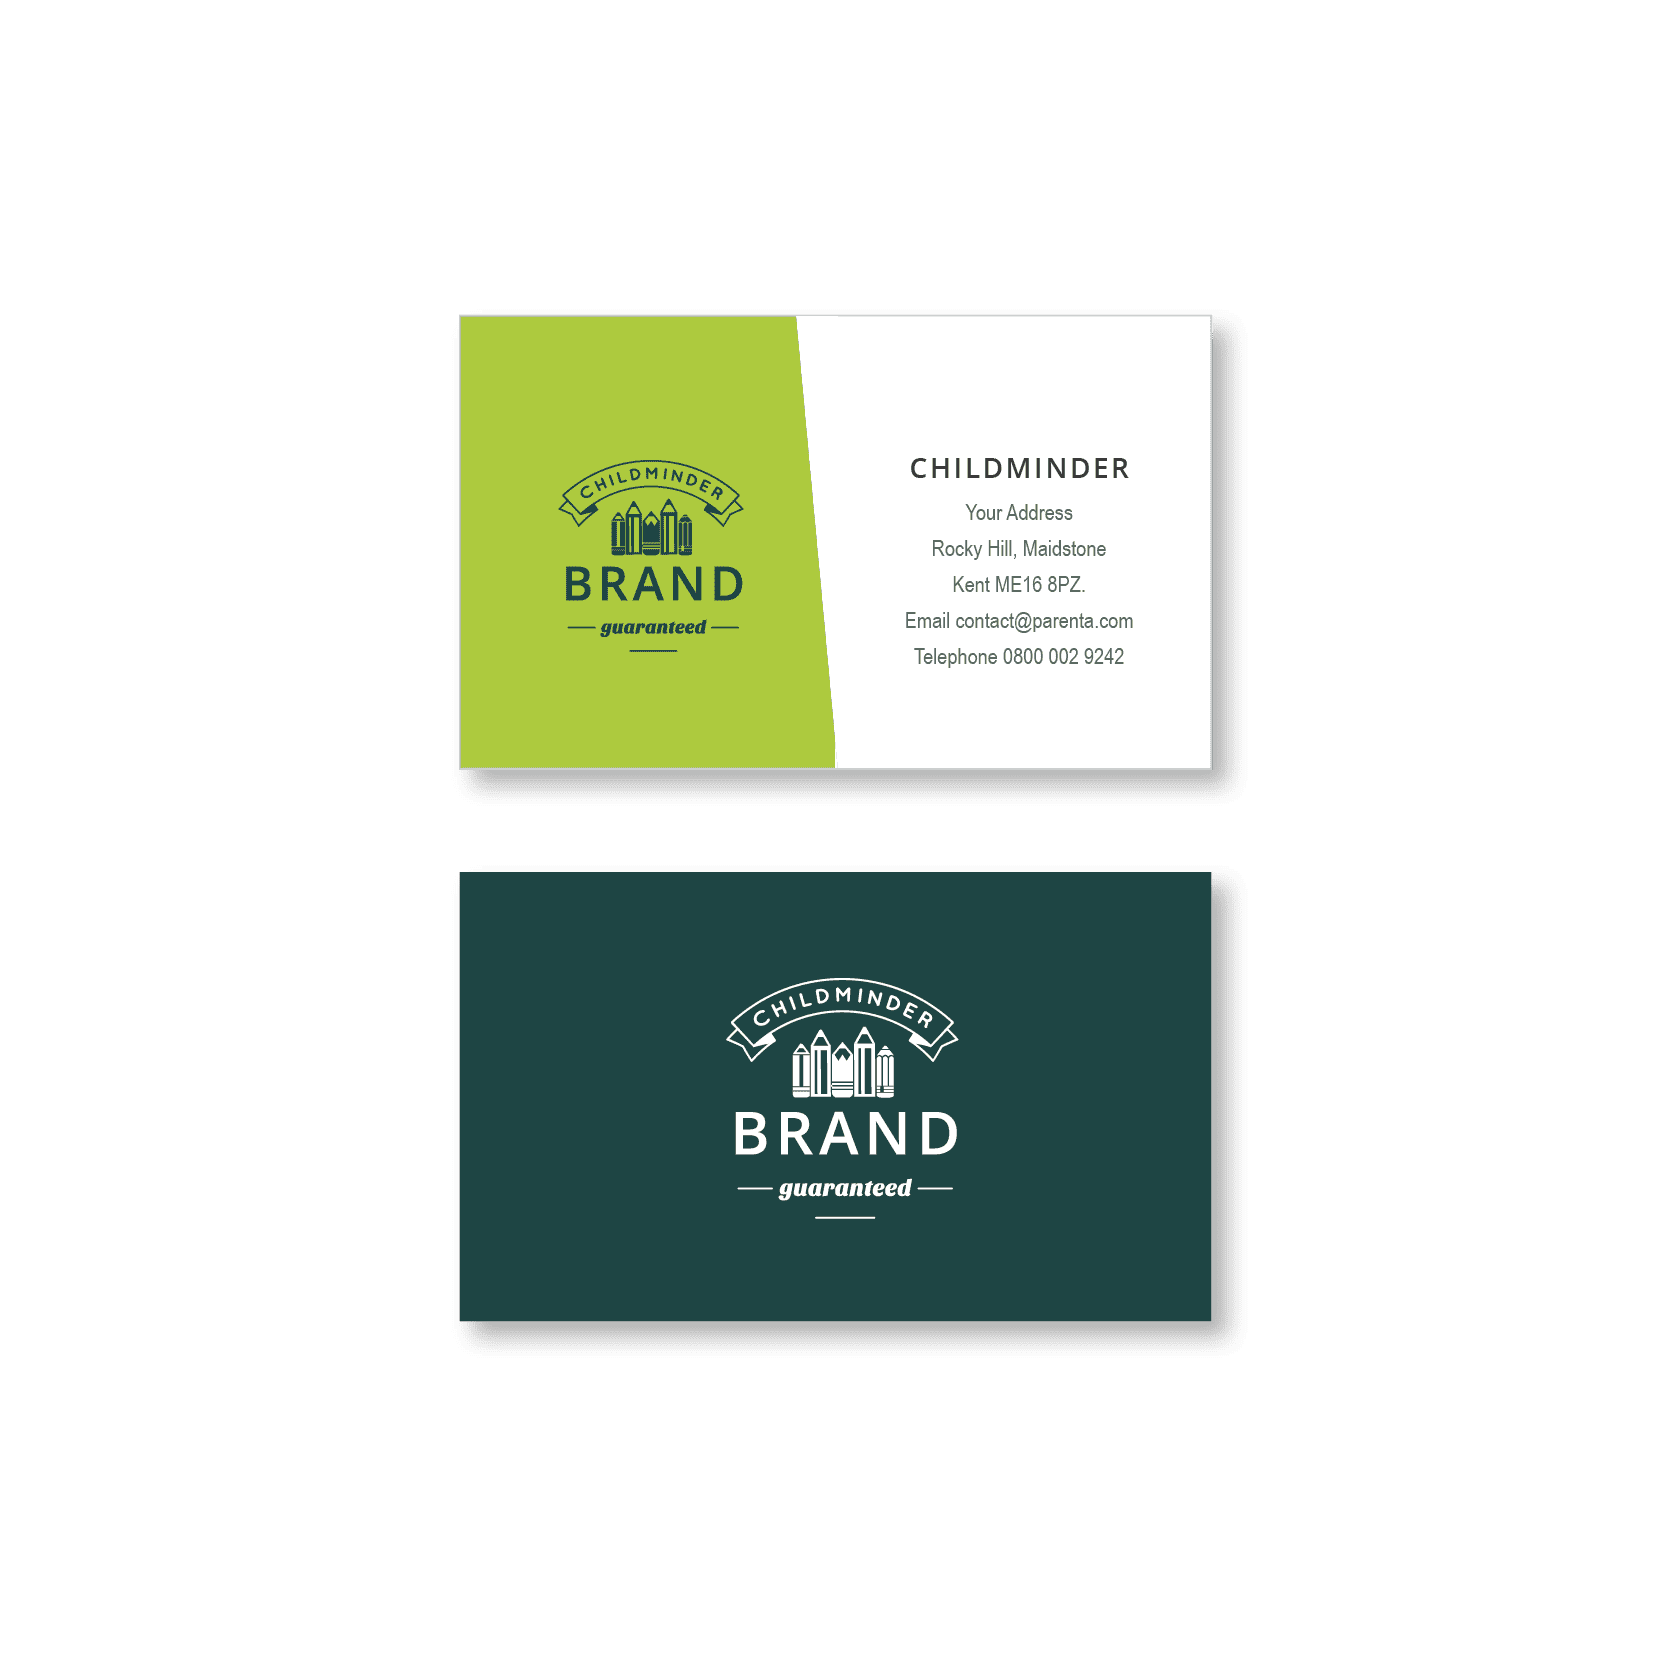 Childminder Business Card Design